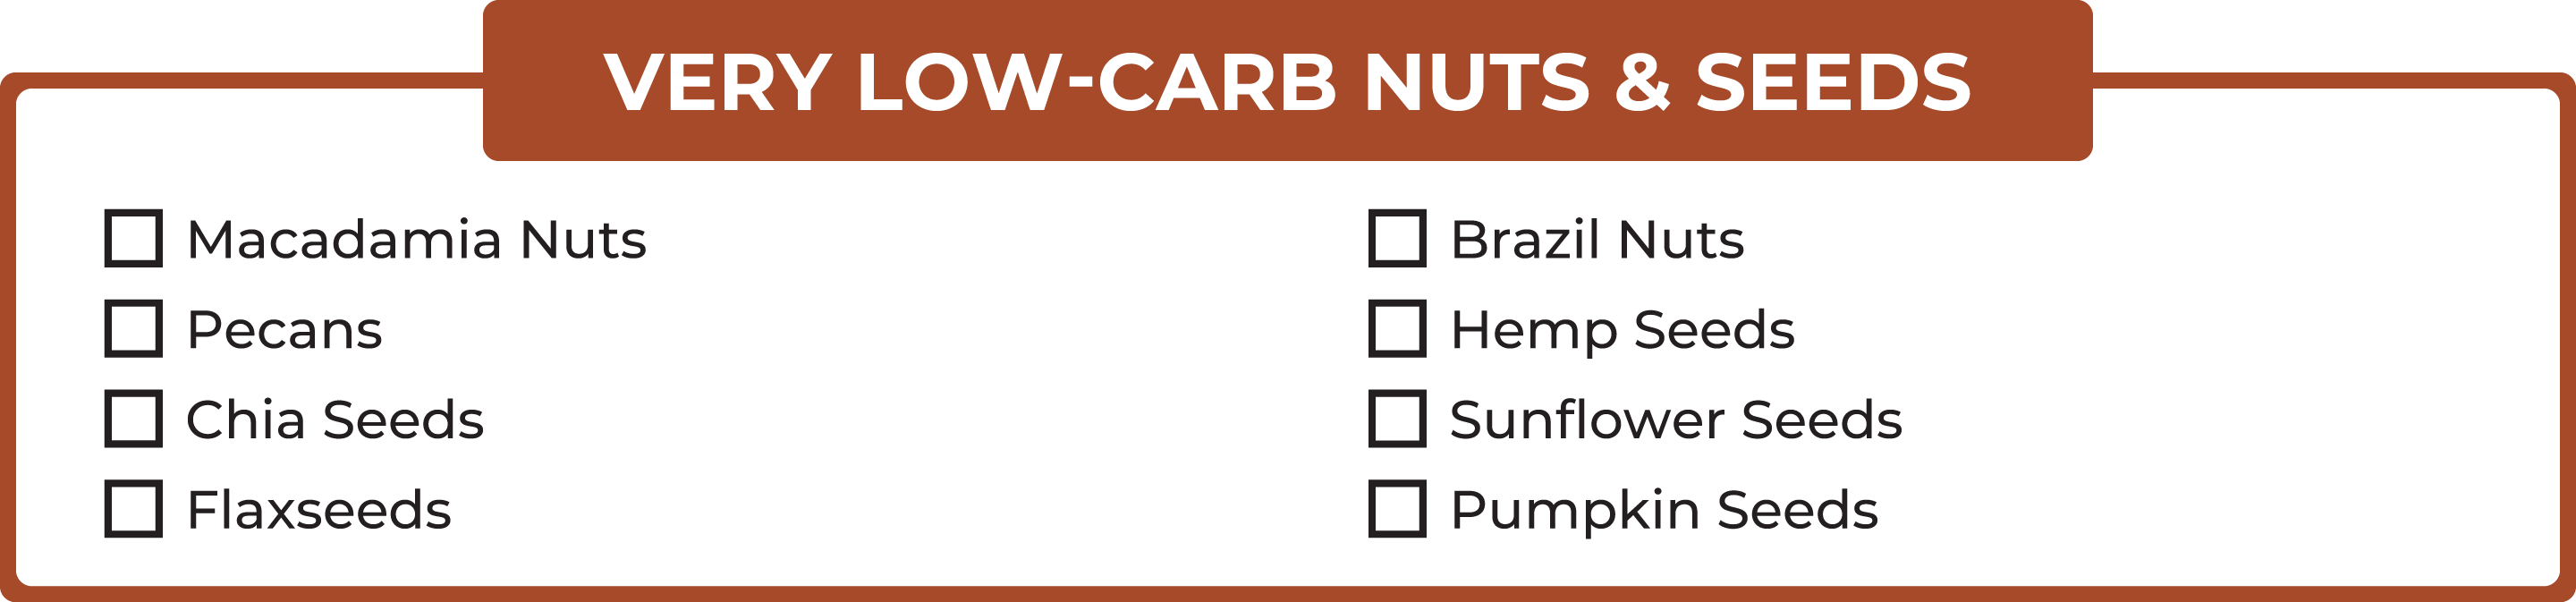 List of very low-carb nuts and seeds